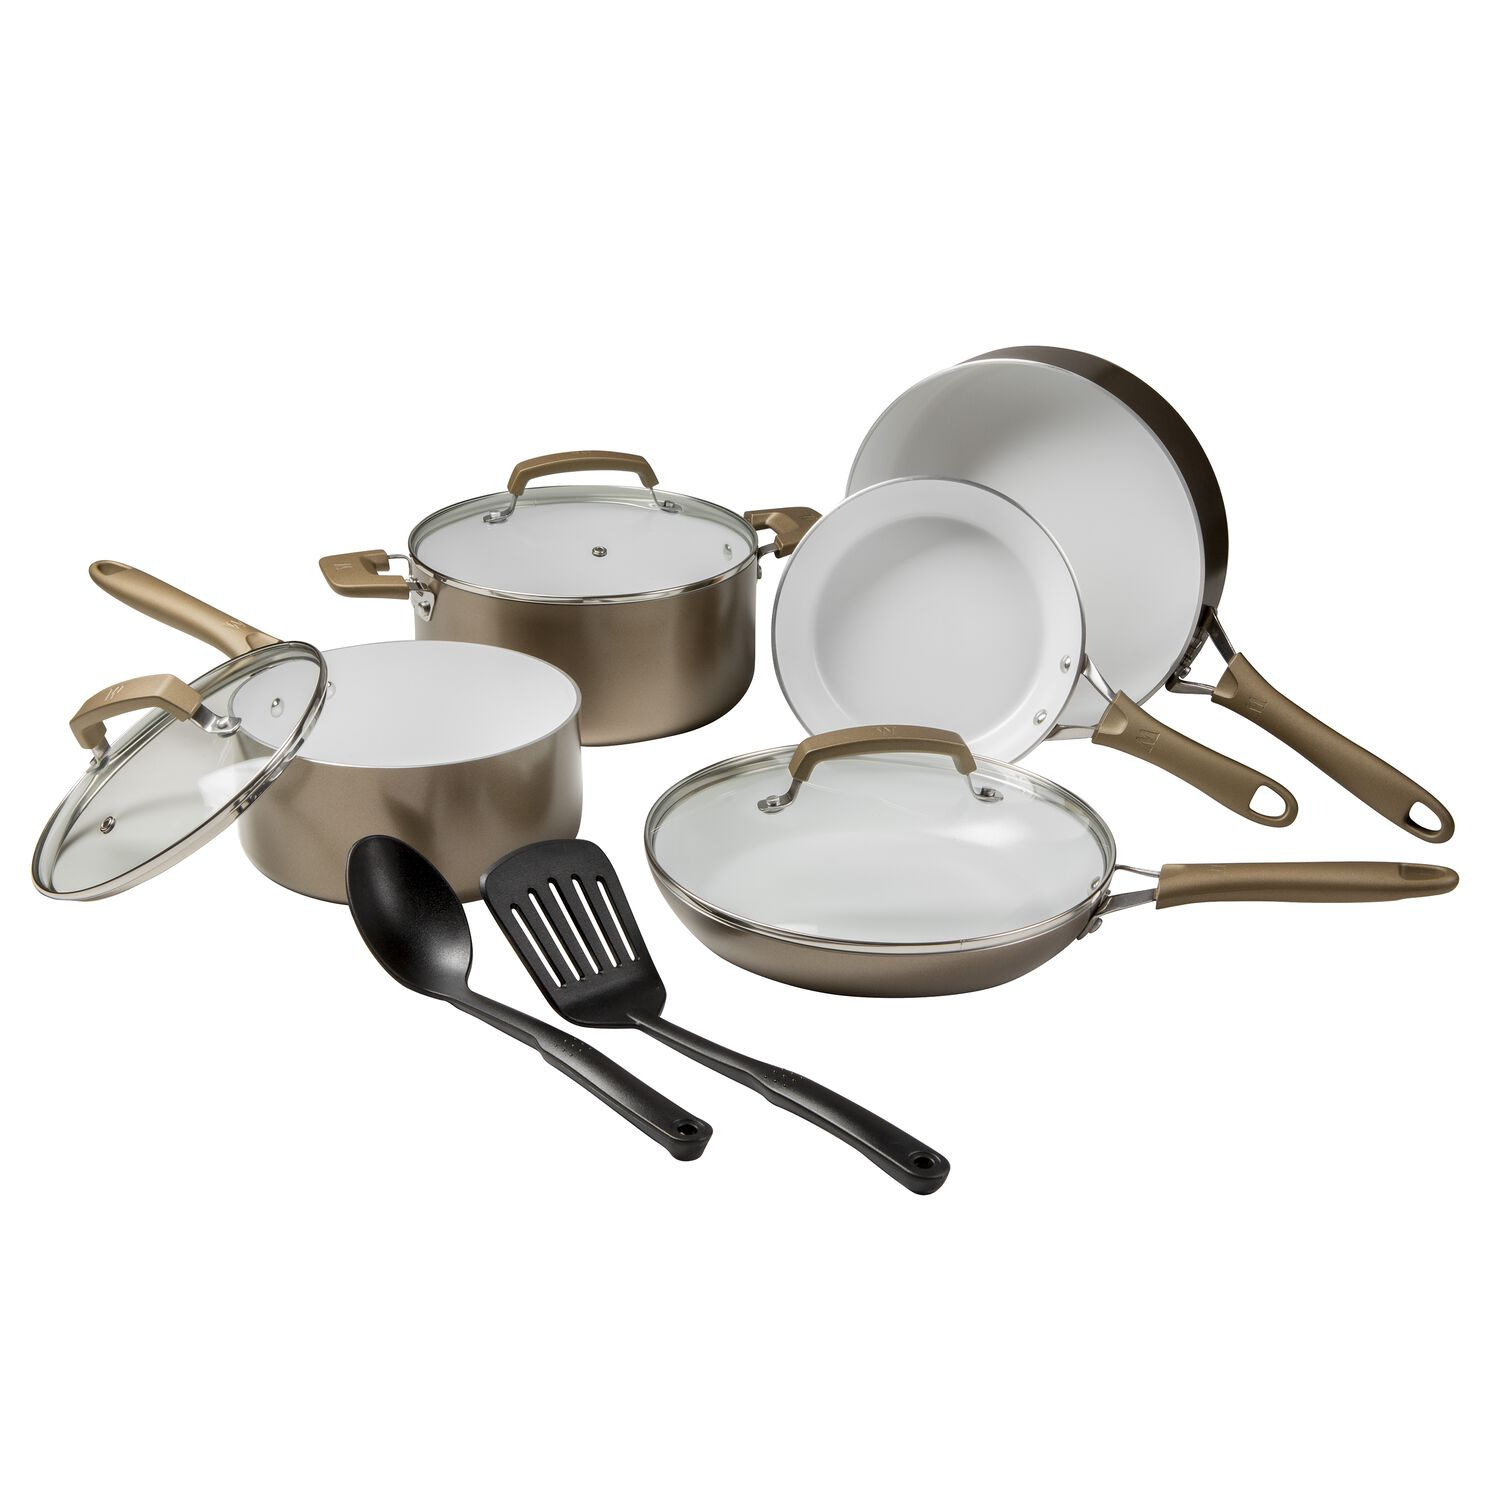 Wearever Pure Living Champagne Gold 10 Pc Cookware Set